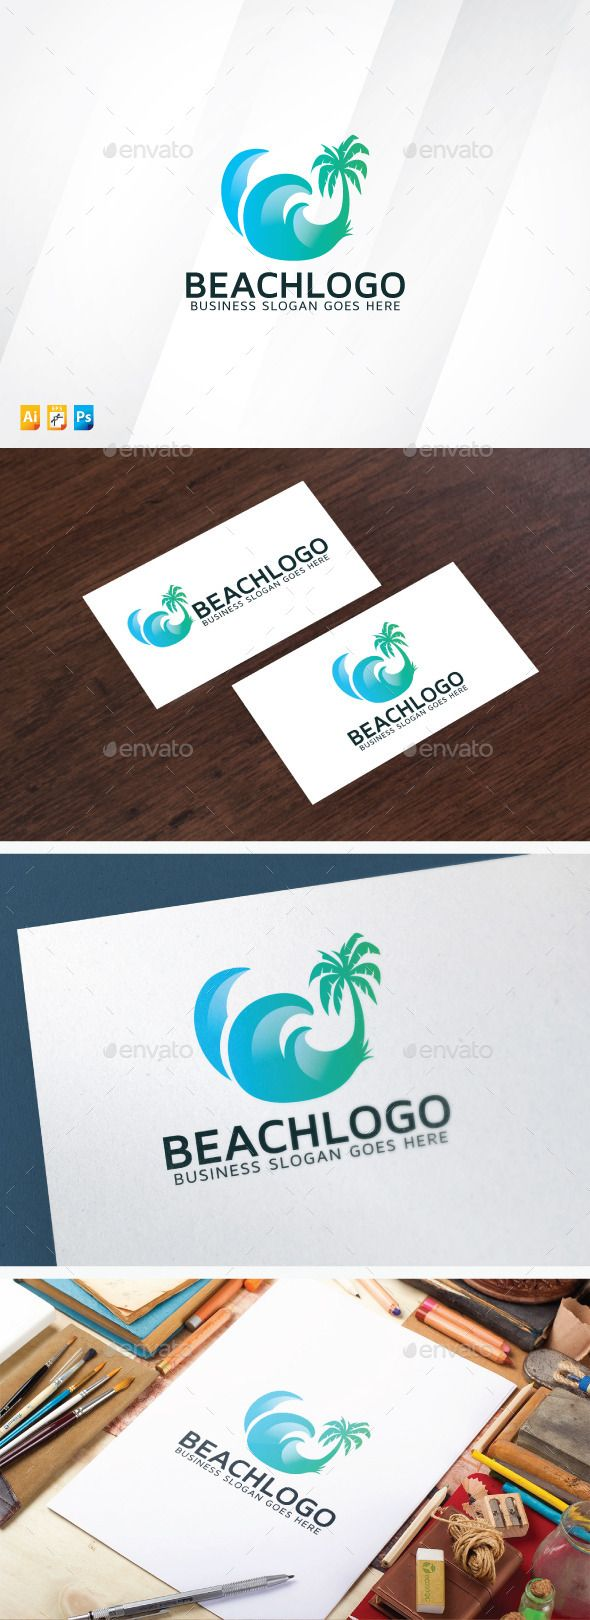 Beach - Logo Design Template Vector #logotype Download it here: http://graphicriver.net/item/beach-logo/12754488?s_rank=520?ref=nexion